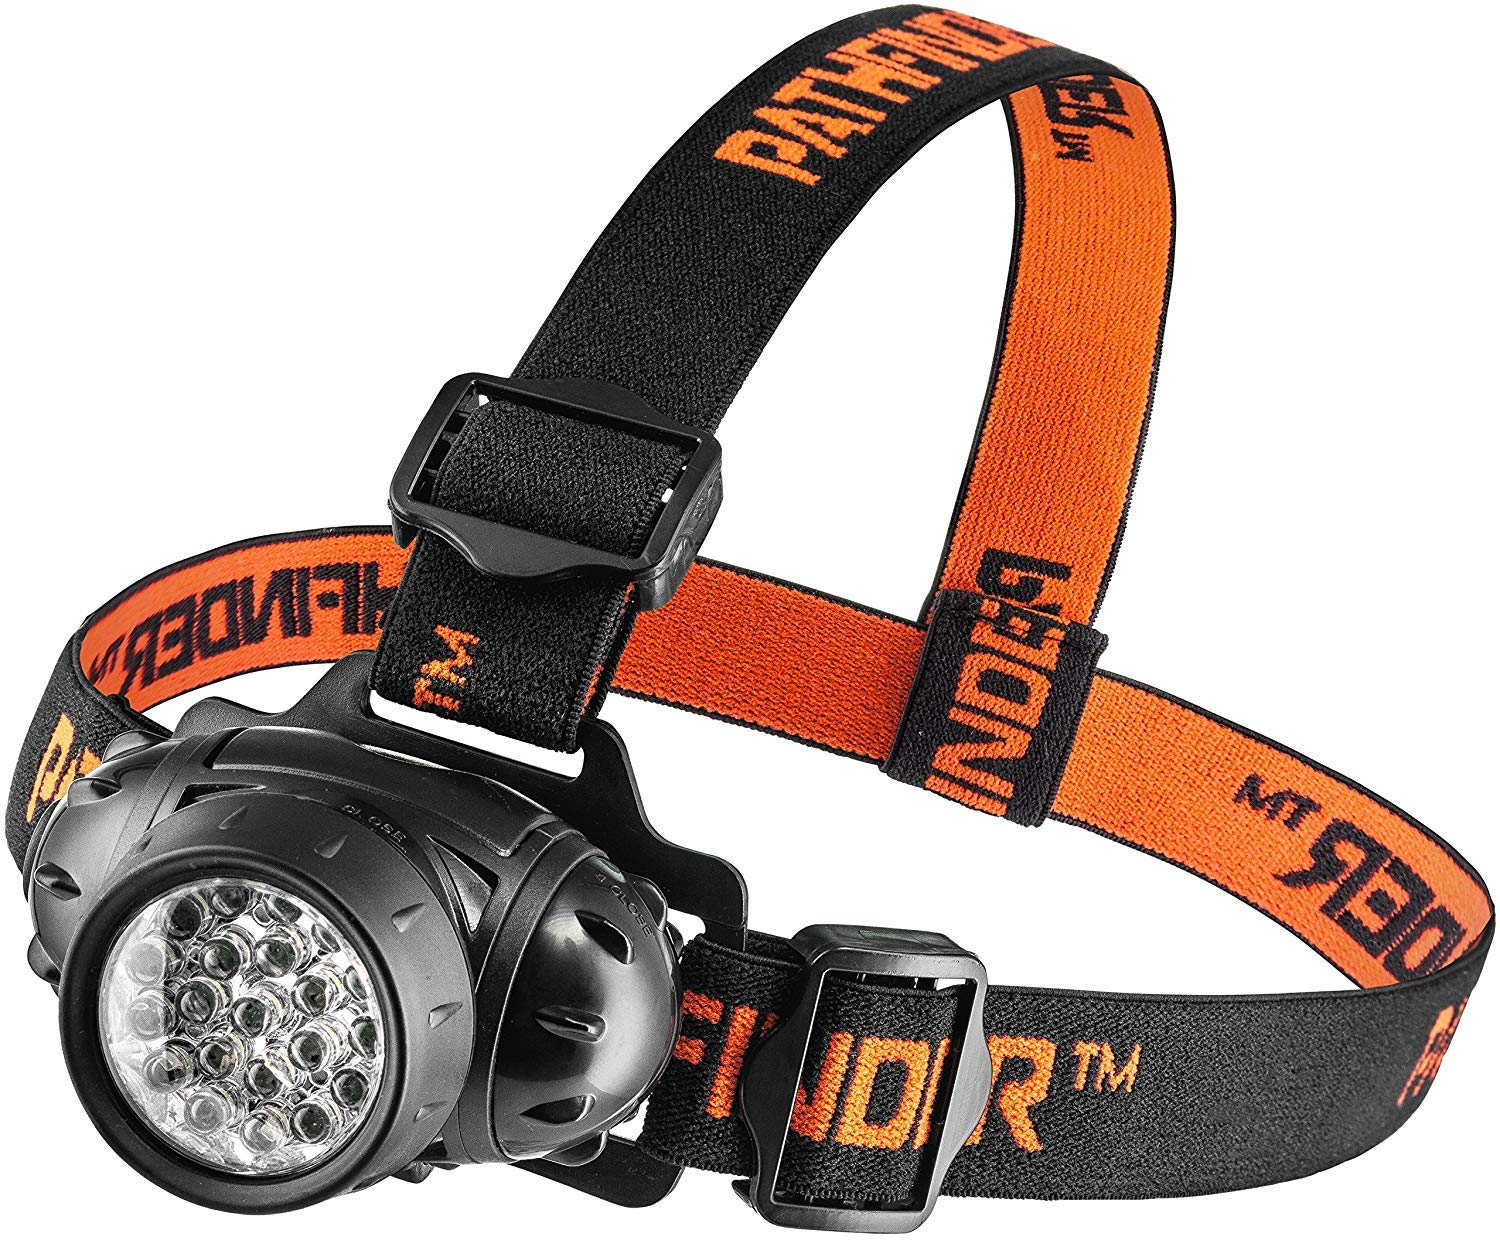 PATHFINDER-21-LED-Headlamp-Headlight-Head-Torch-Lightweight-Comfortable-and